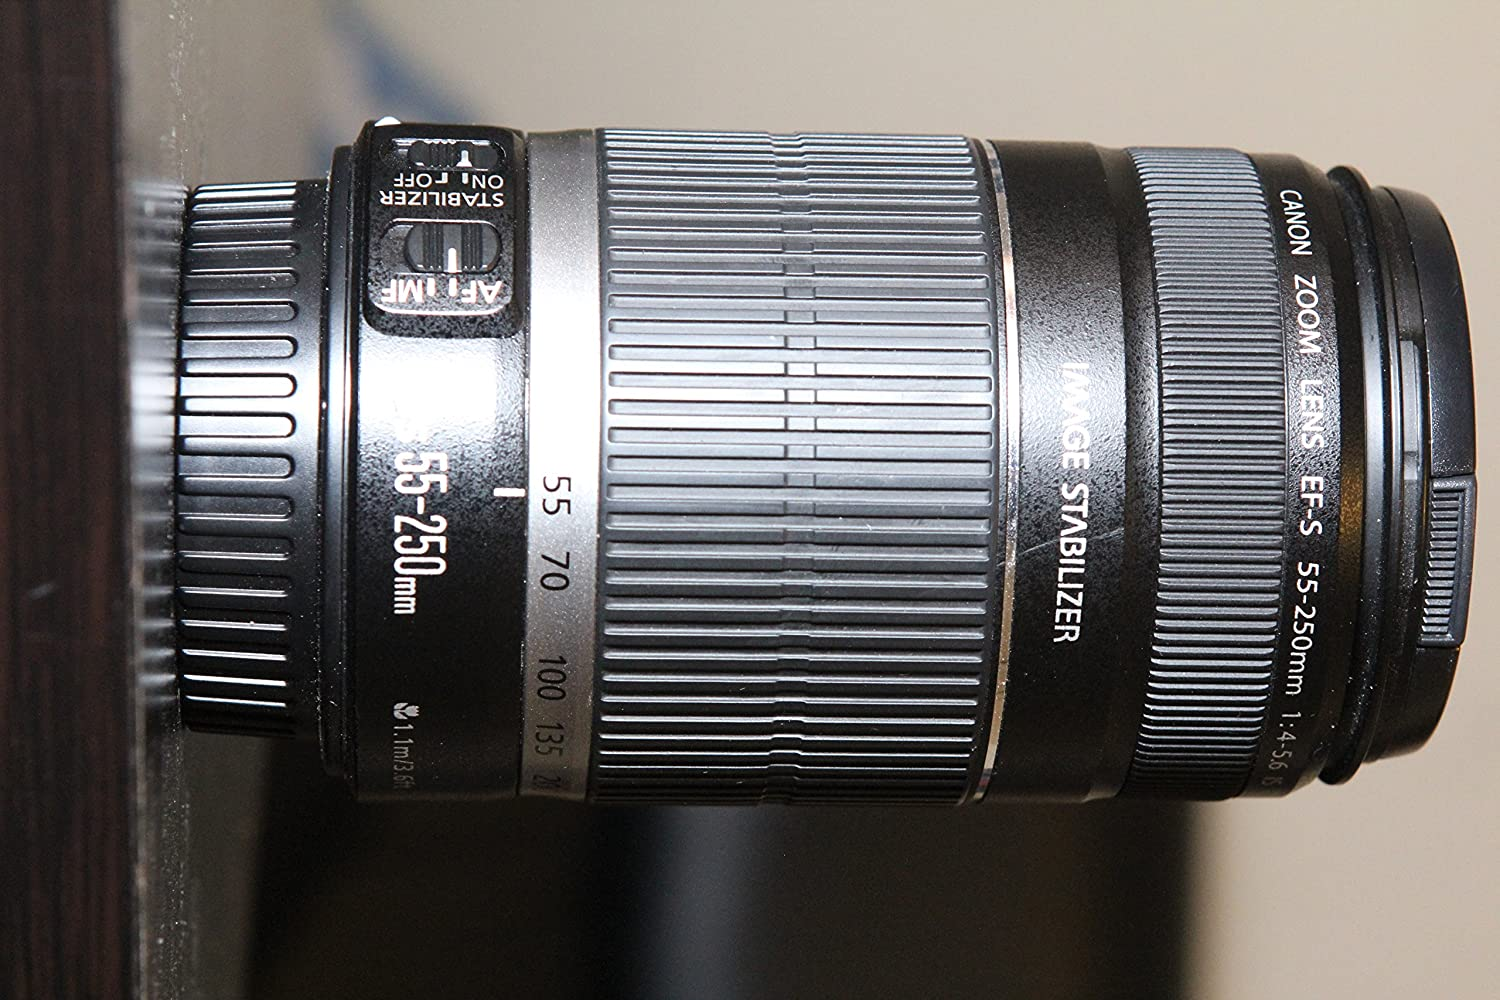 Canon EF-S 55-250mm f/4-5.6 IS Telephoto Zoom Lens for Canon EOS DSLR Cameras (White Box)